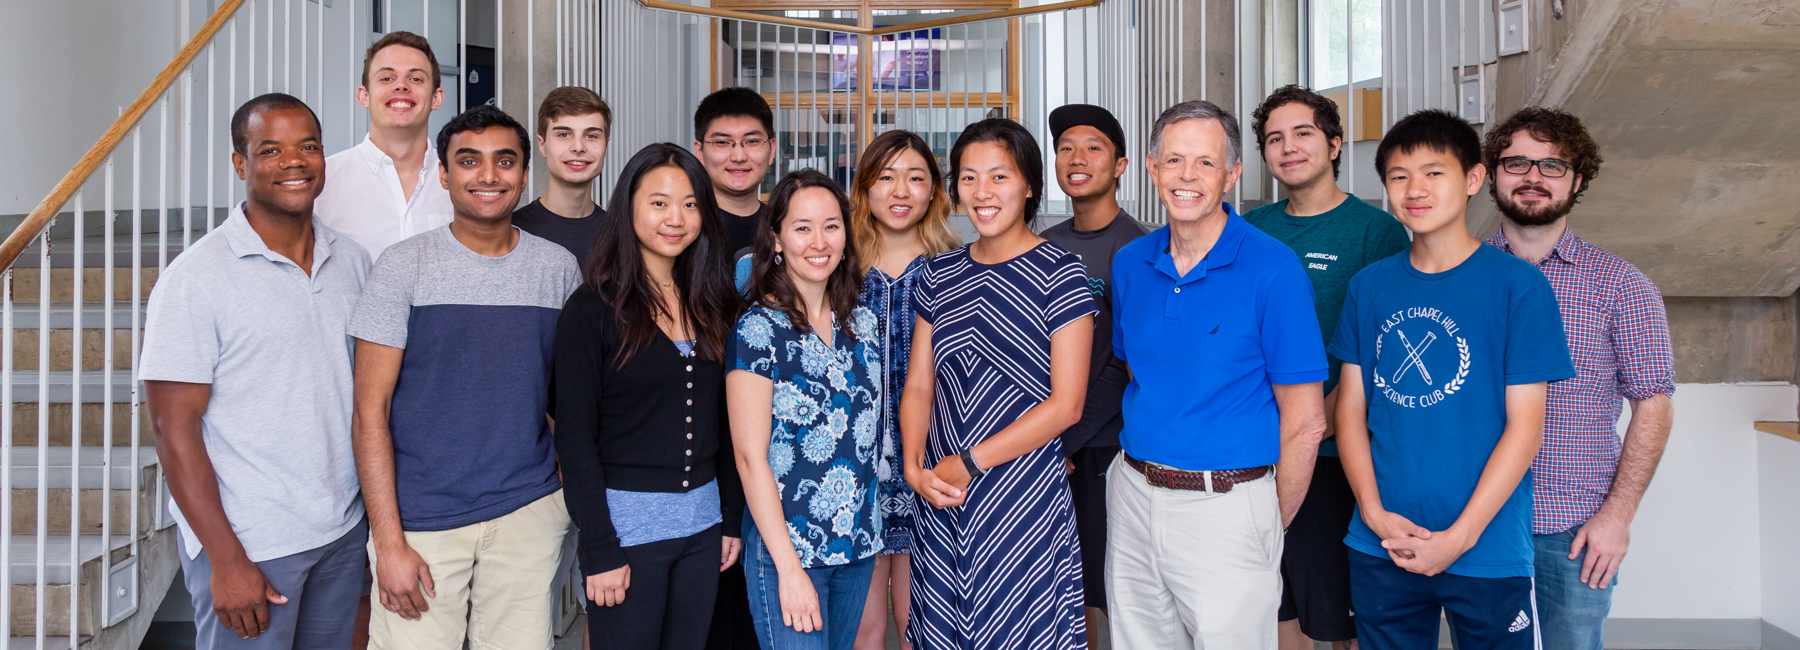 Undergrad summer research group 2018